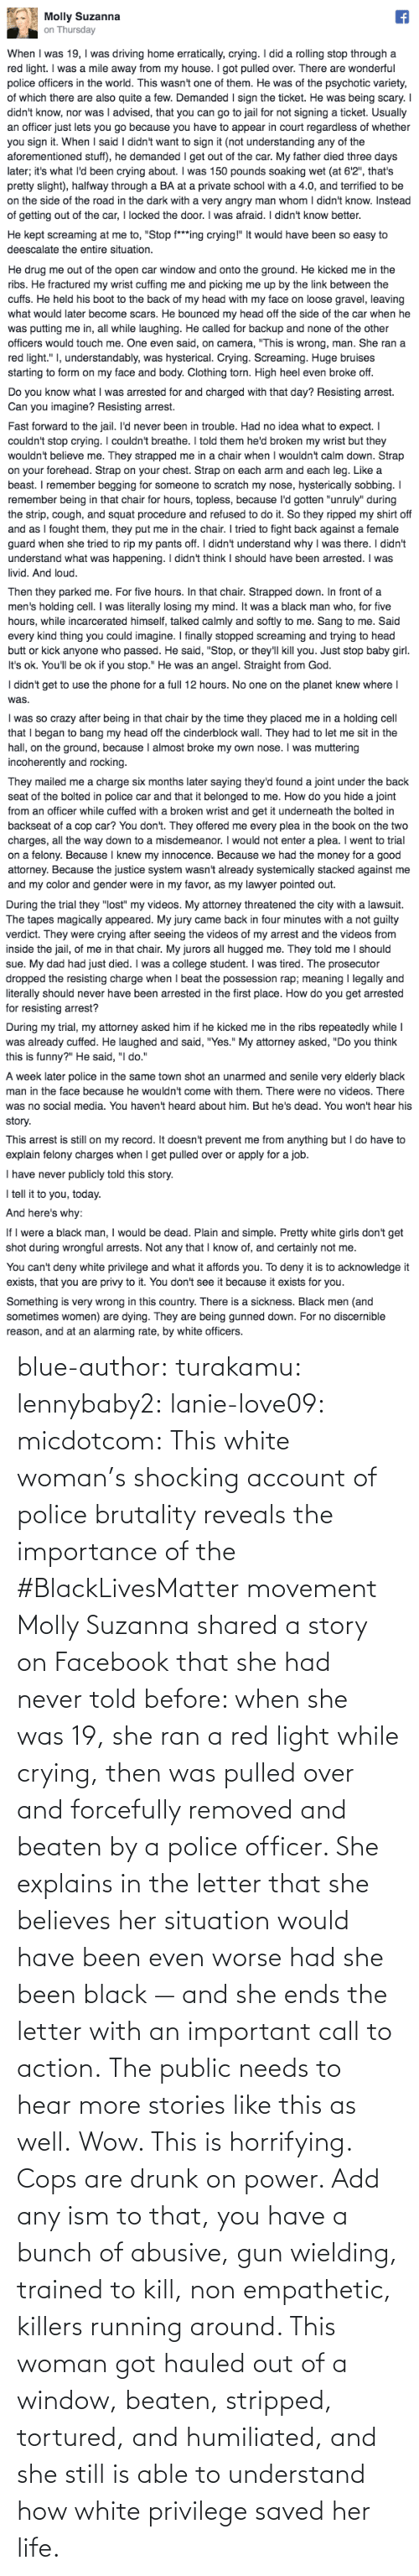 around: blue-author: turakamu:  lennybaby2:  lanie-love09:  micdotcom:  This white woman's shocking account of police brutality reveals the importance of the #BlackLivesMatter movement Molly Suzanna shared a story on Facebook that she had never told before: when she was 19, she ran a red light while crying, then was pulled over and forcefully removed and beaten by a police officer. She explains in the letter that she believes her situation would have been even worse had she been black — and she ends the letter with an important call to action.  The public needs to hear more stories like this as well.  Wow. This is horrifying.  Cops are drunk on power. Add any ism to that, you have a bunch of abusive, gun wielding, trained to kill, non empathetic, killers running around.    This woman got hauled out of a window, beaten, stripped, tortured, and humiliated, and she still is able to understand how white privilege saved her life.